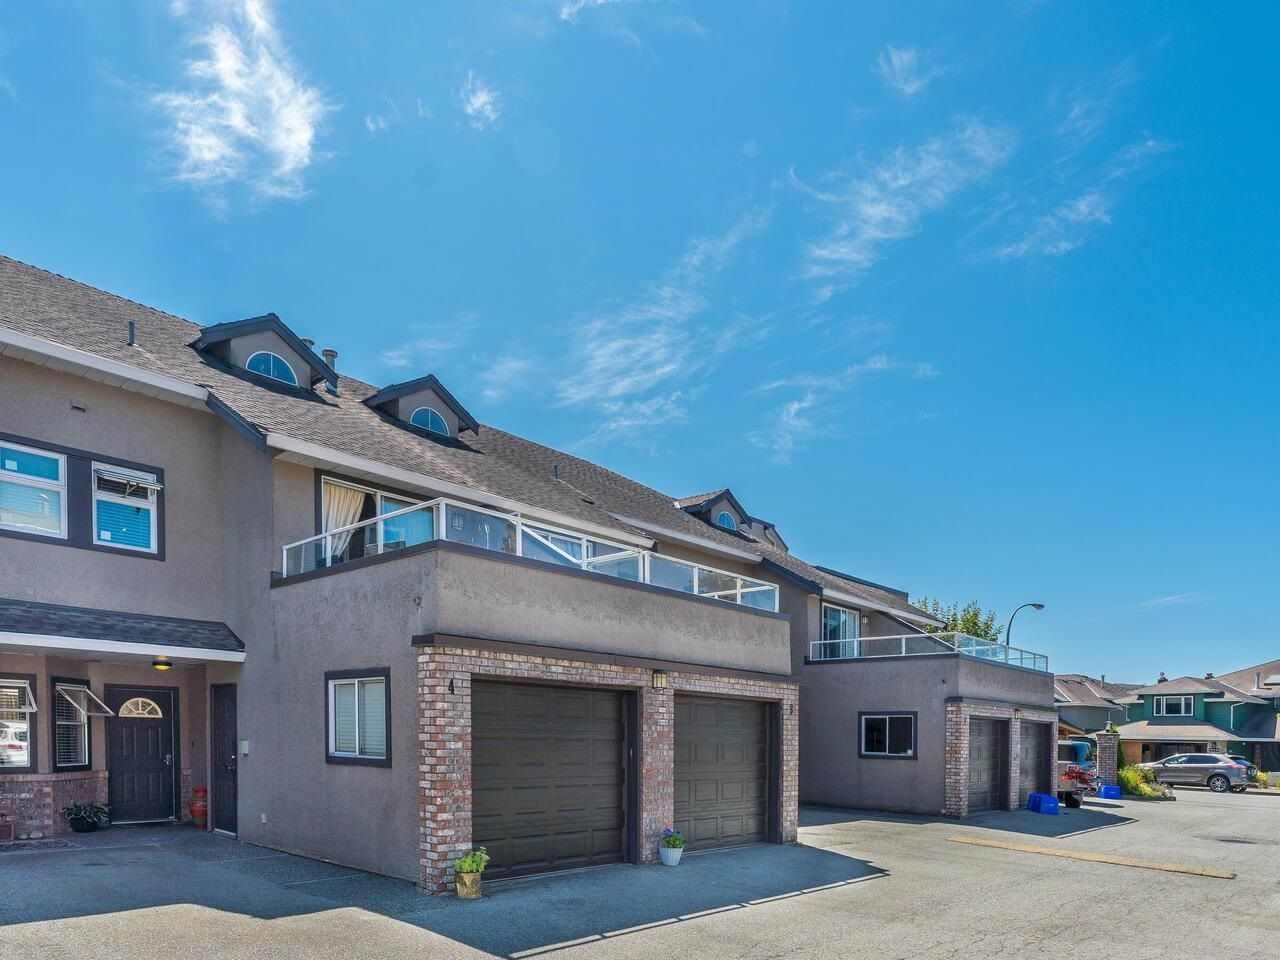 Main Photo: 4 12438 BRUNSWICK Place in Richmond: Steveston South Townhouse for sale : MLS®# R2606672